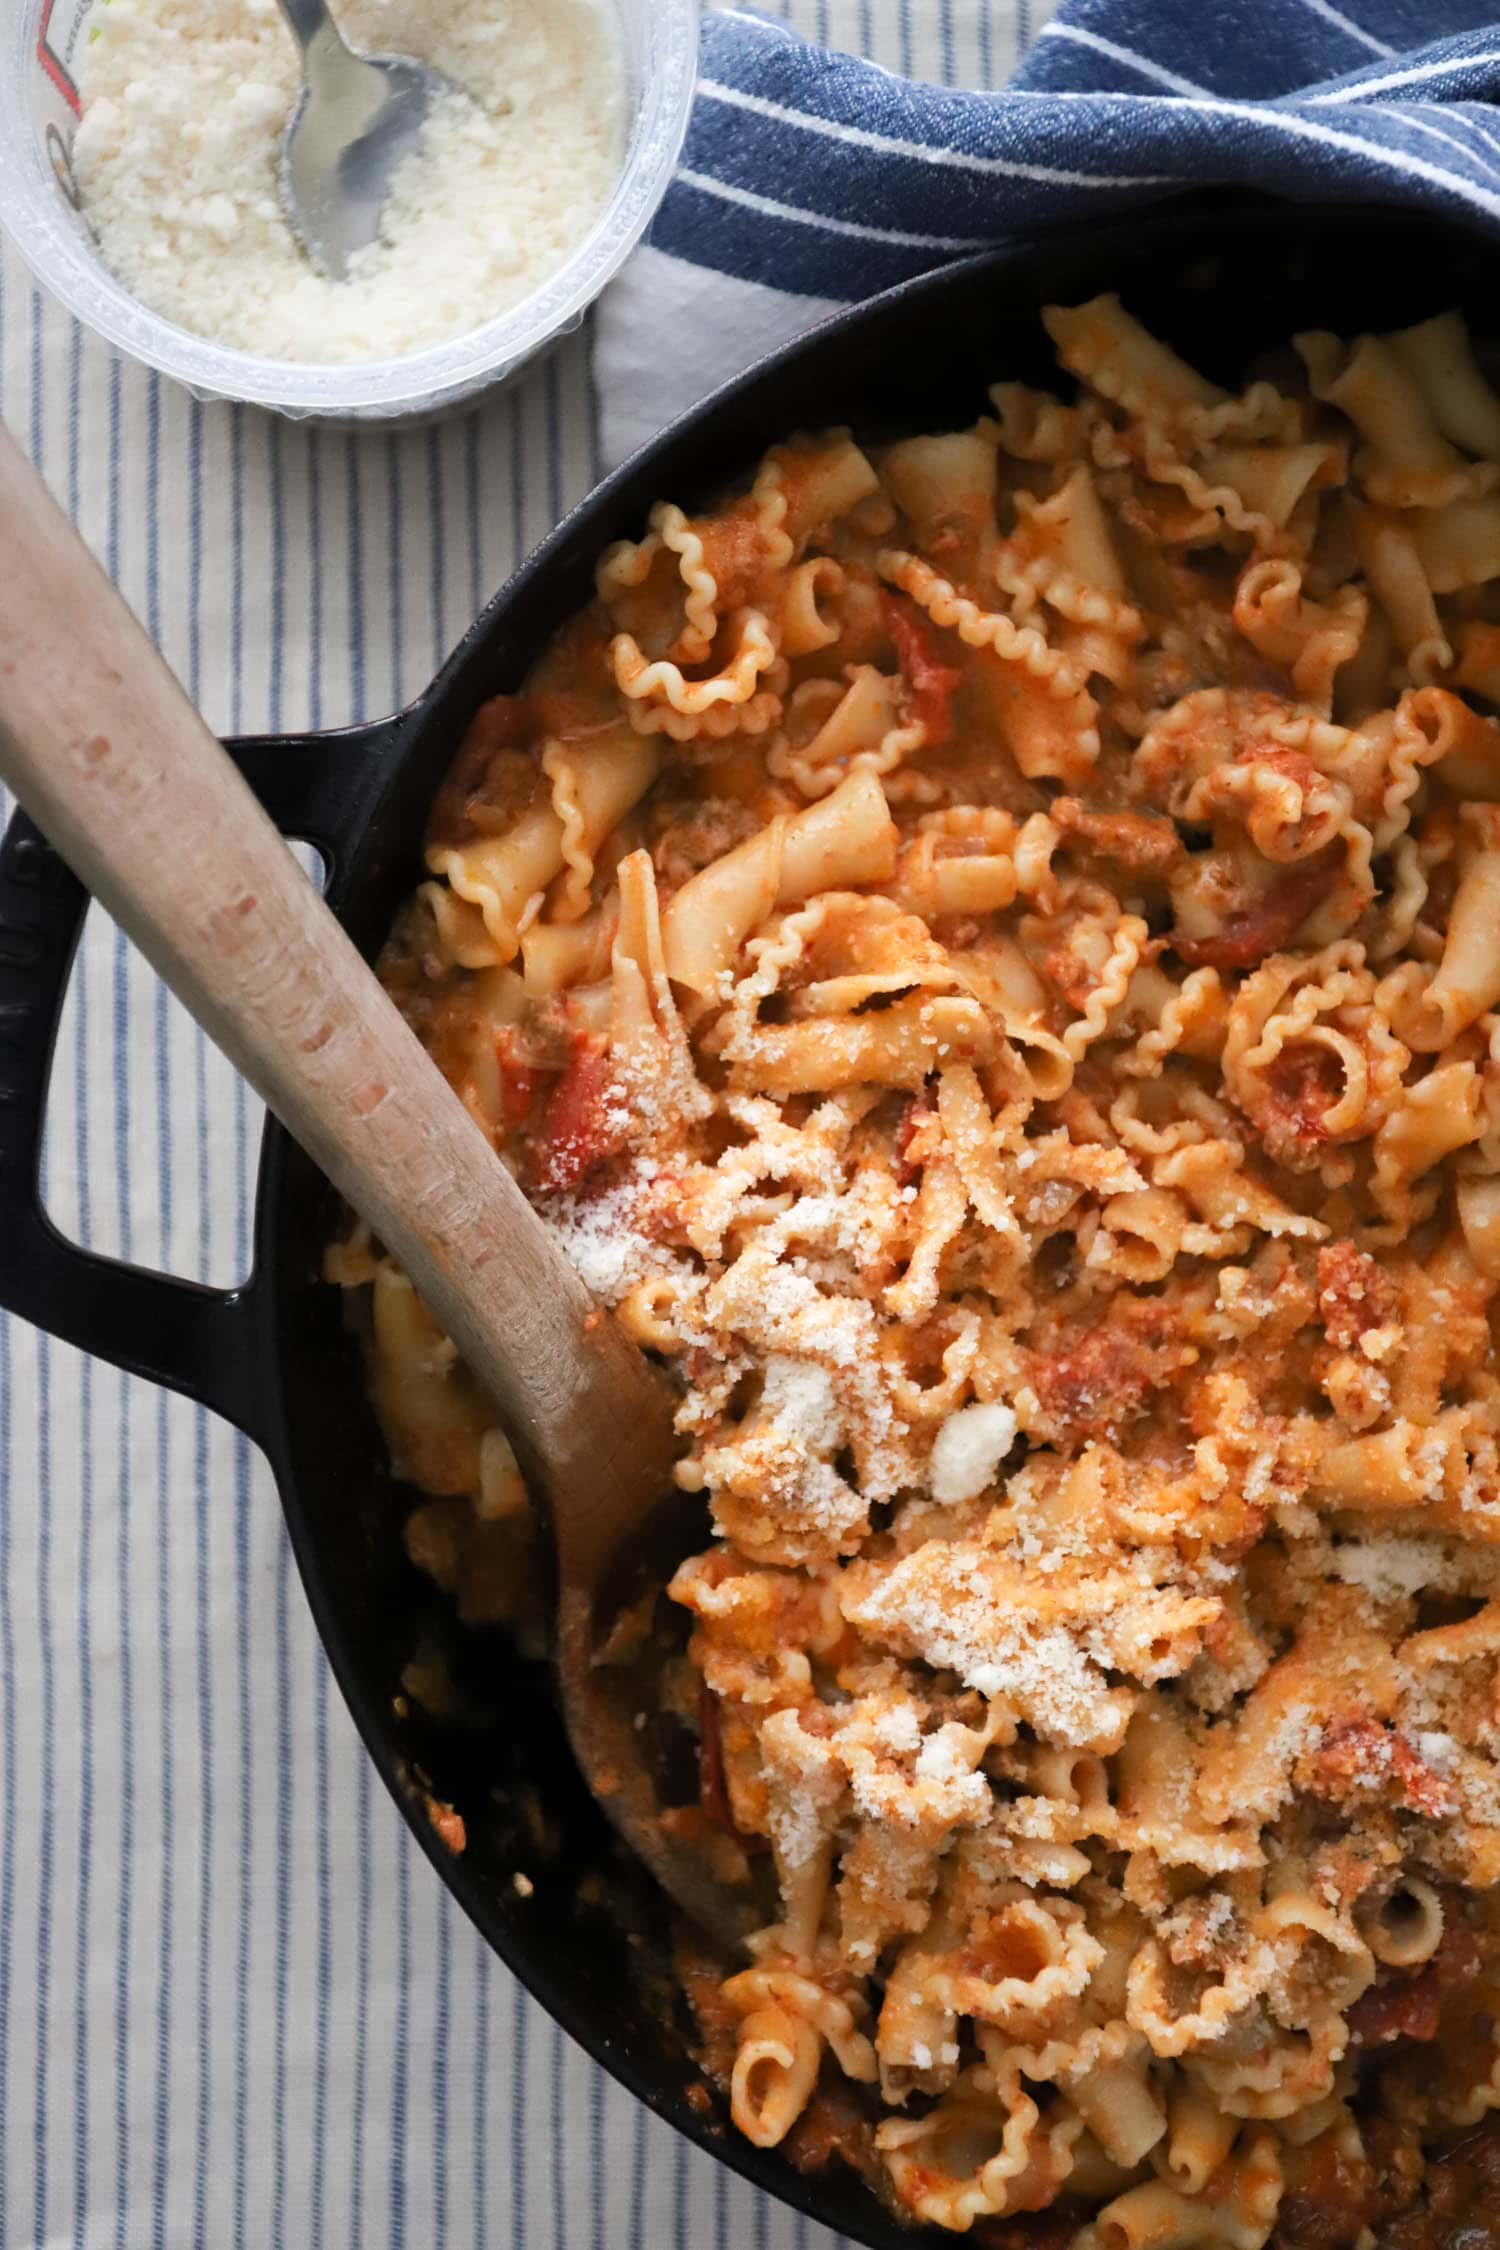 large skillet of curly pasta with parmesan and tomato sauce